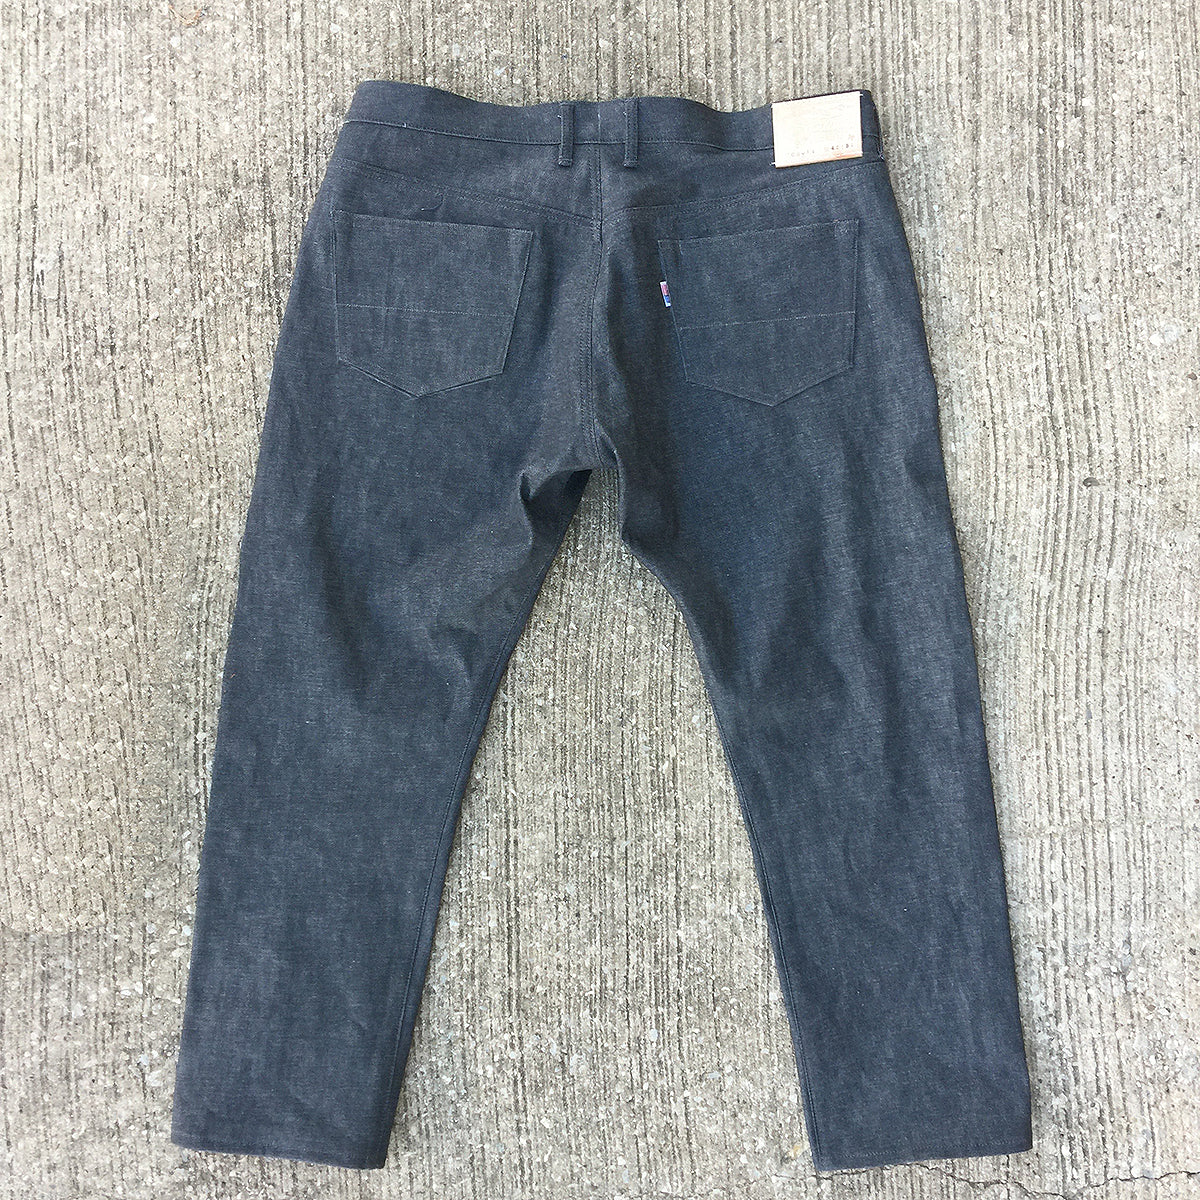 14oz Japanese Grey Red Selvage